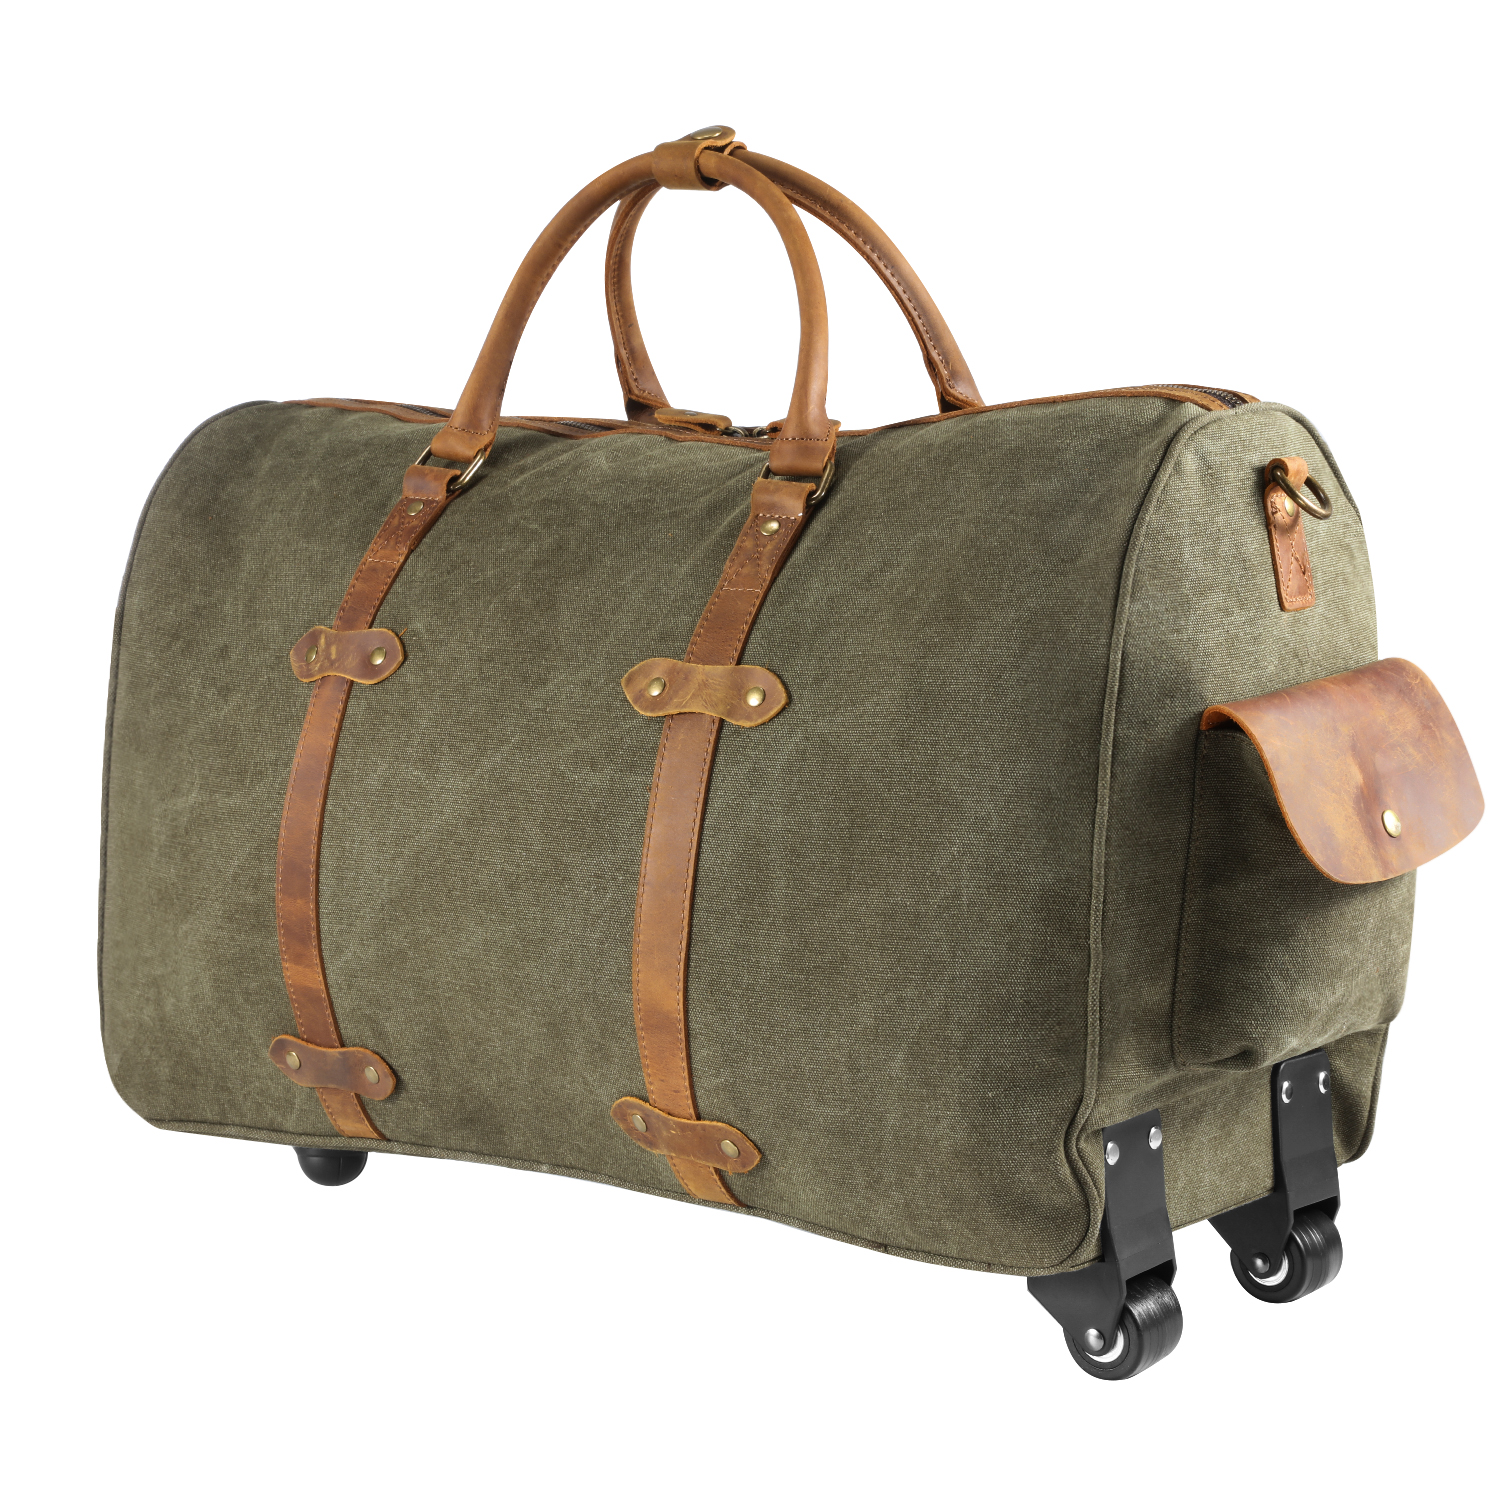 Kattee Rolling Duffle Bag with Wheels Canvas Travel Luggage Duffel Bag 50L (Army Green)